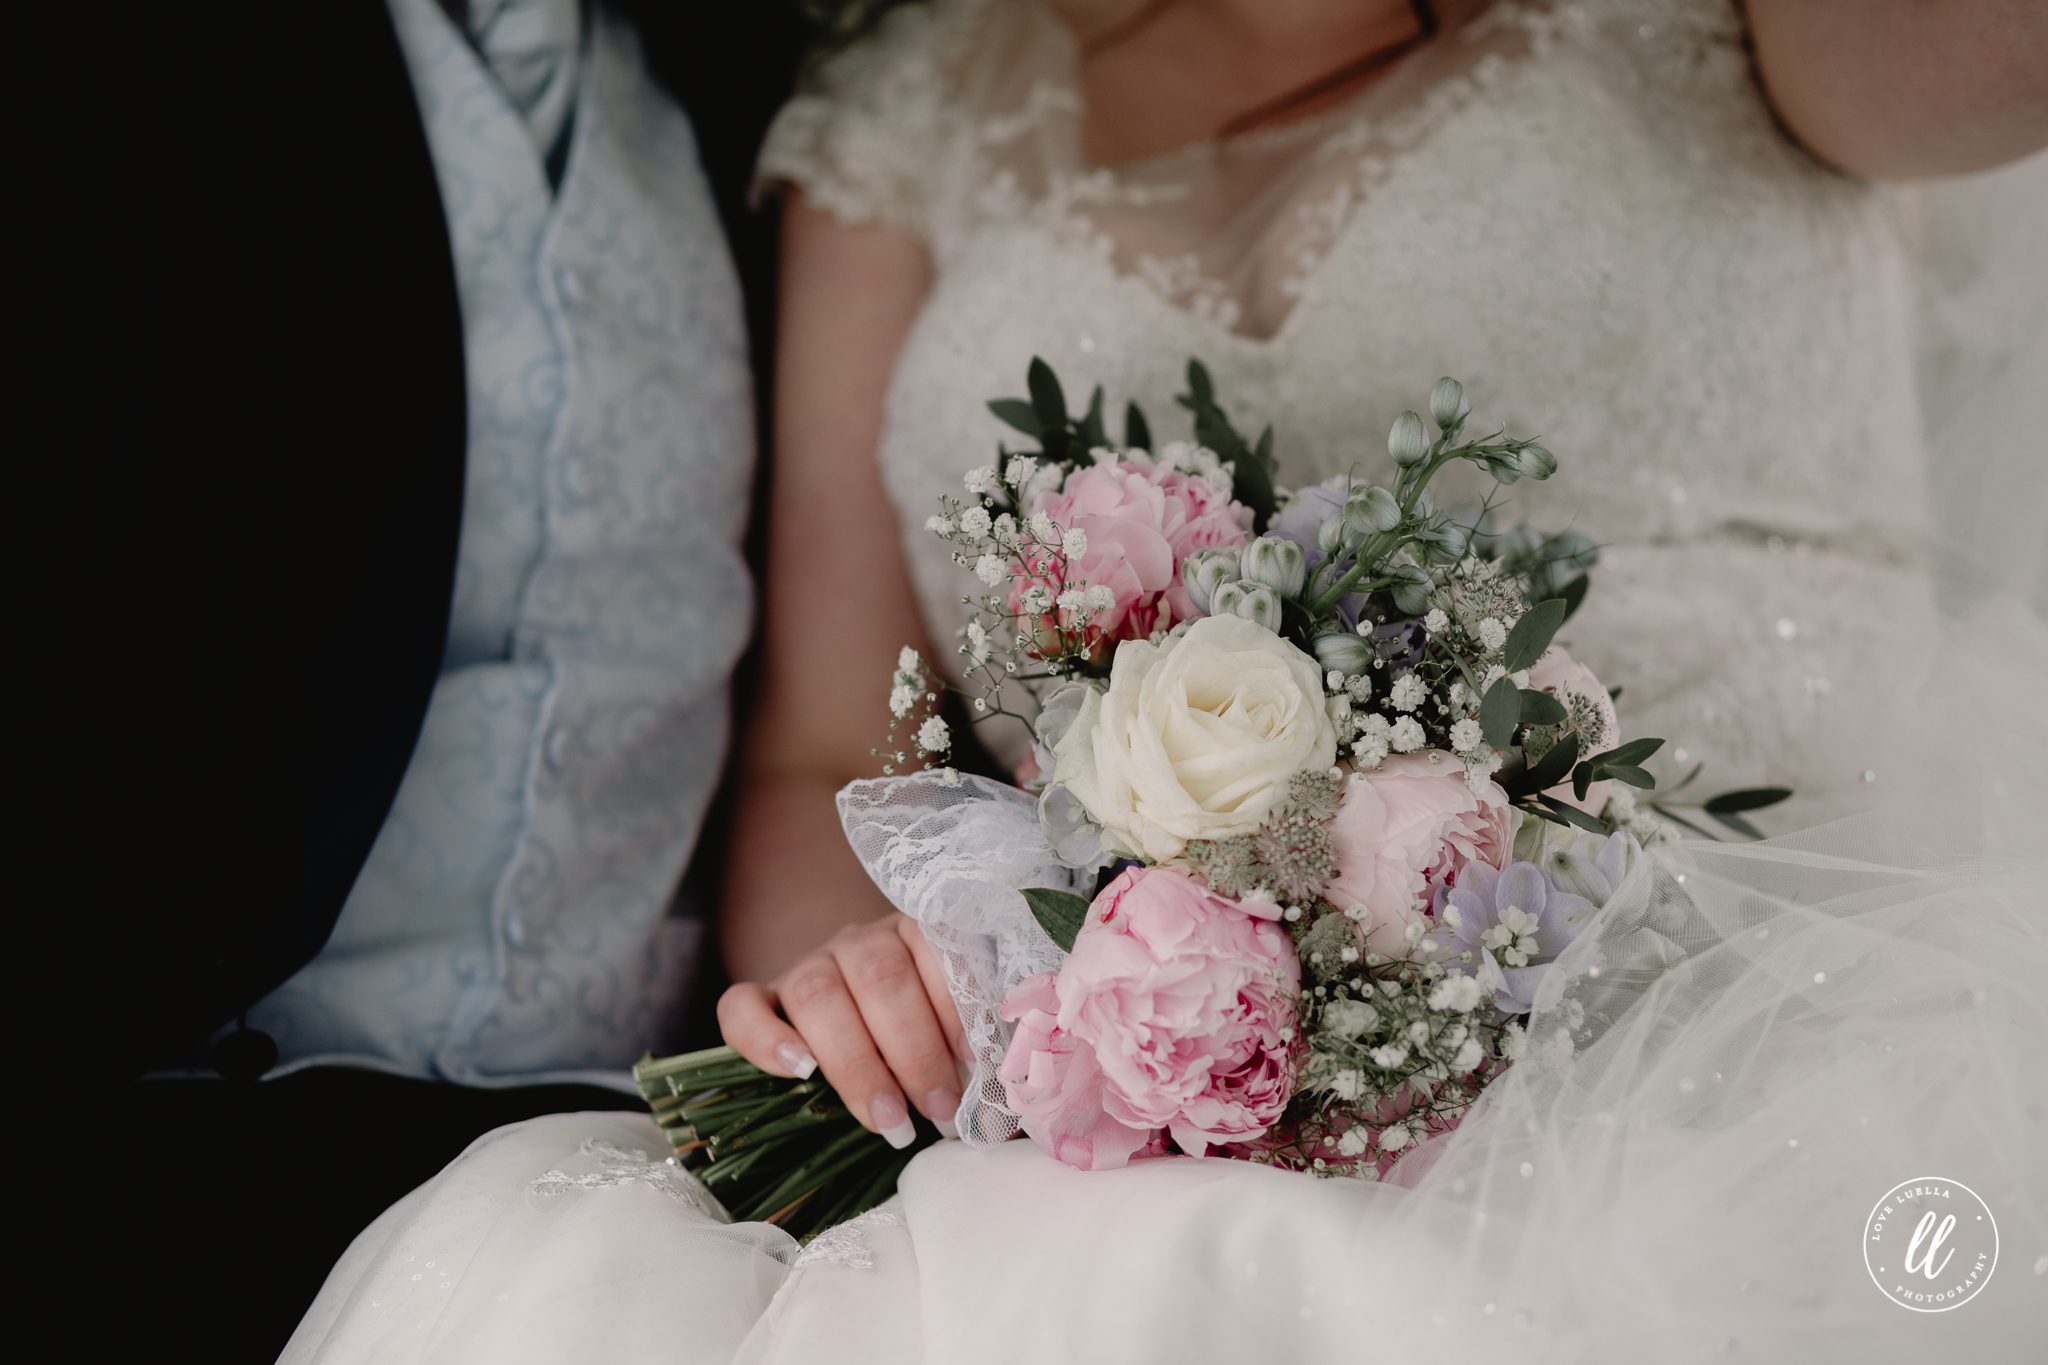 An alternative view of the bridal bouquet by The Very Nice Flower Company